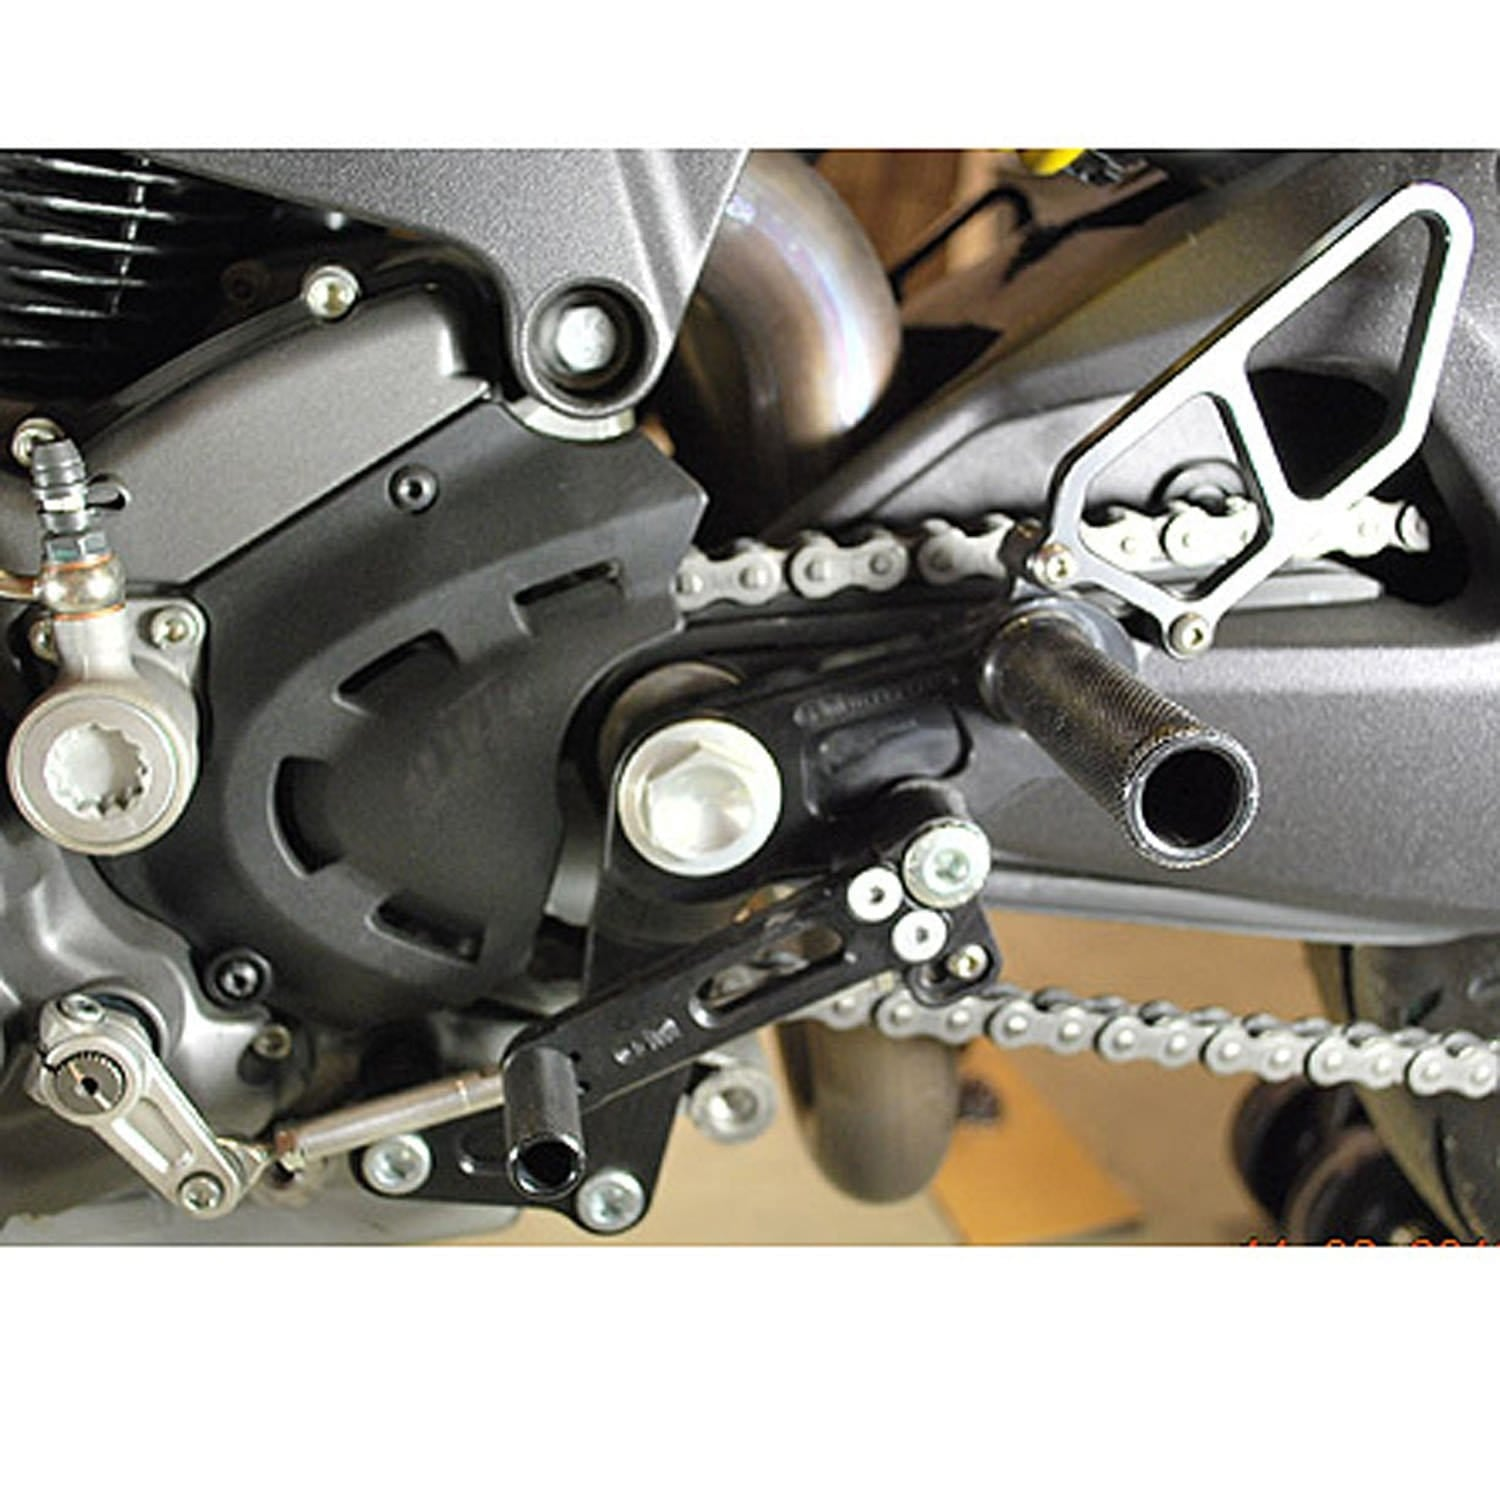 05-0660B Ducati Monster 696/796/1100 Complete Rearset - Woodcraft Technologies - Motorcycle Parts